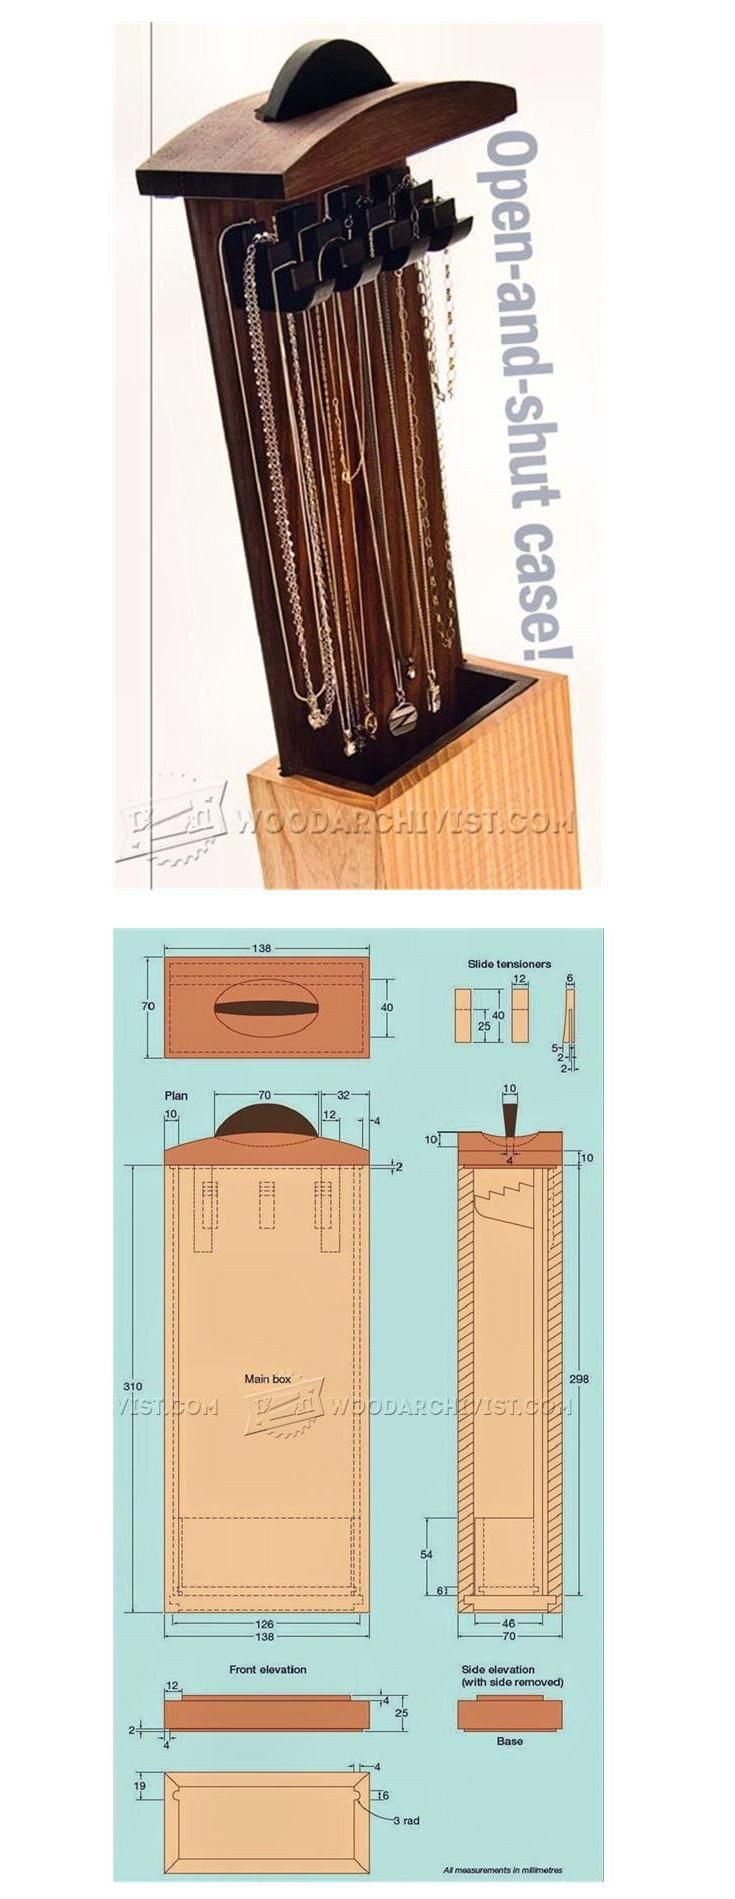 Necklace Box Plans - Woodworking Plans and Projects | WoodArchivist.com